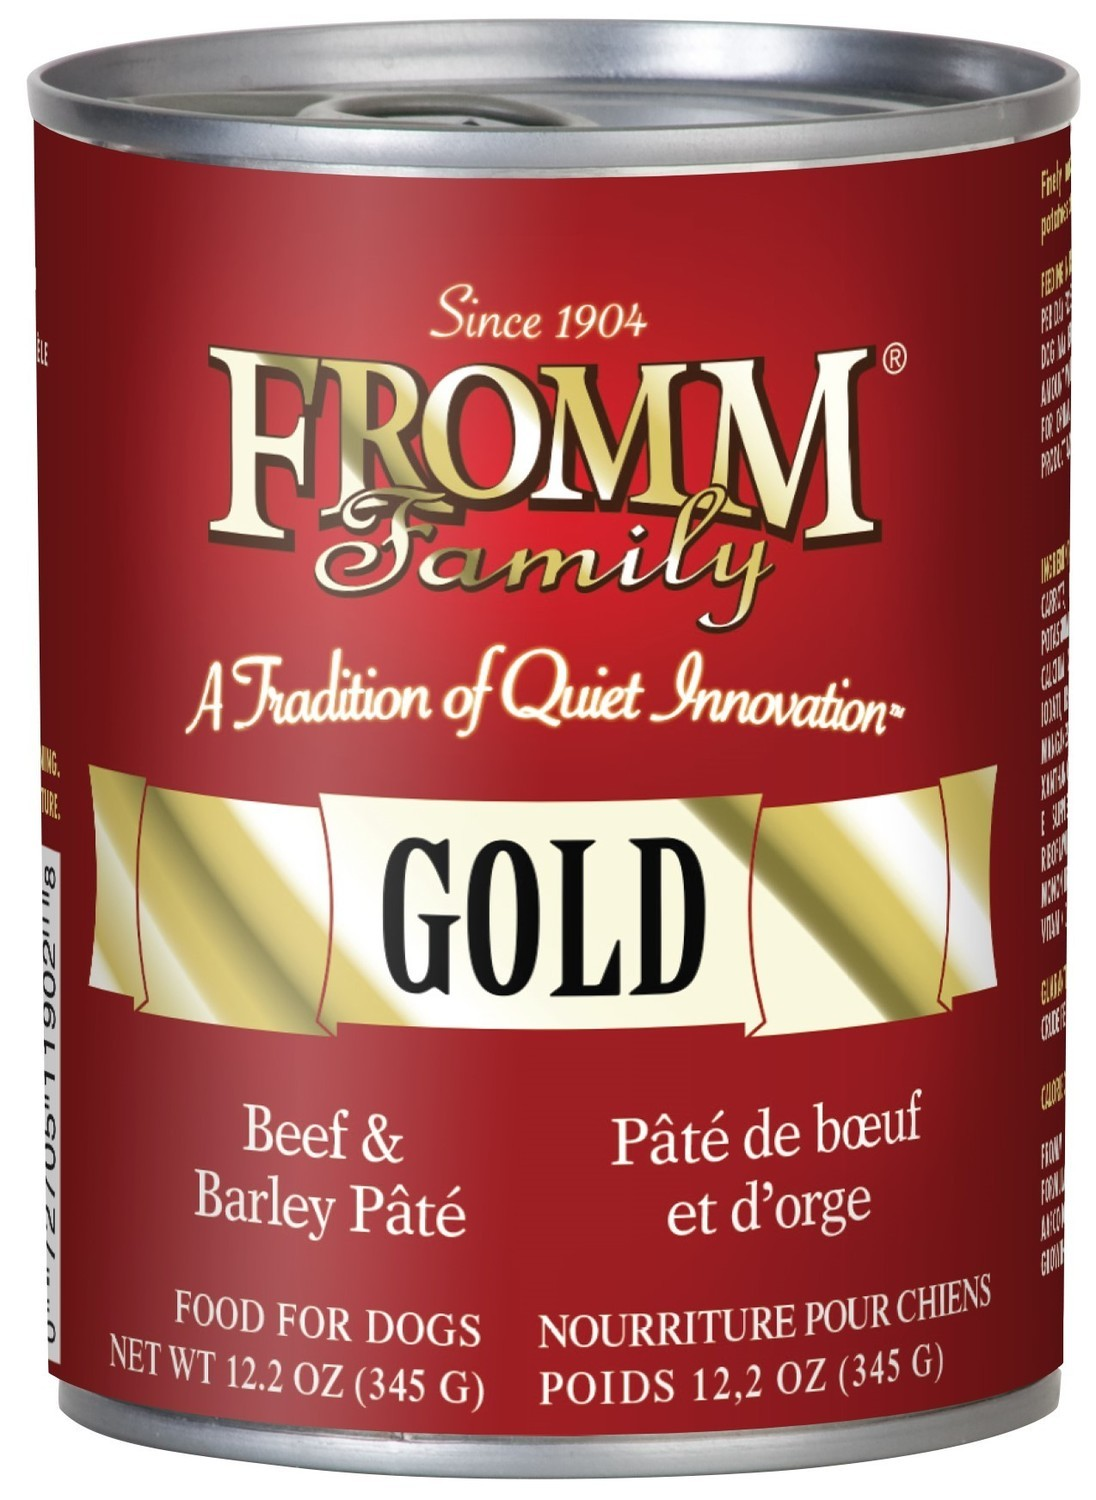 FROMM Gold Beef & Barley Pate 12.2oz.